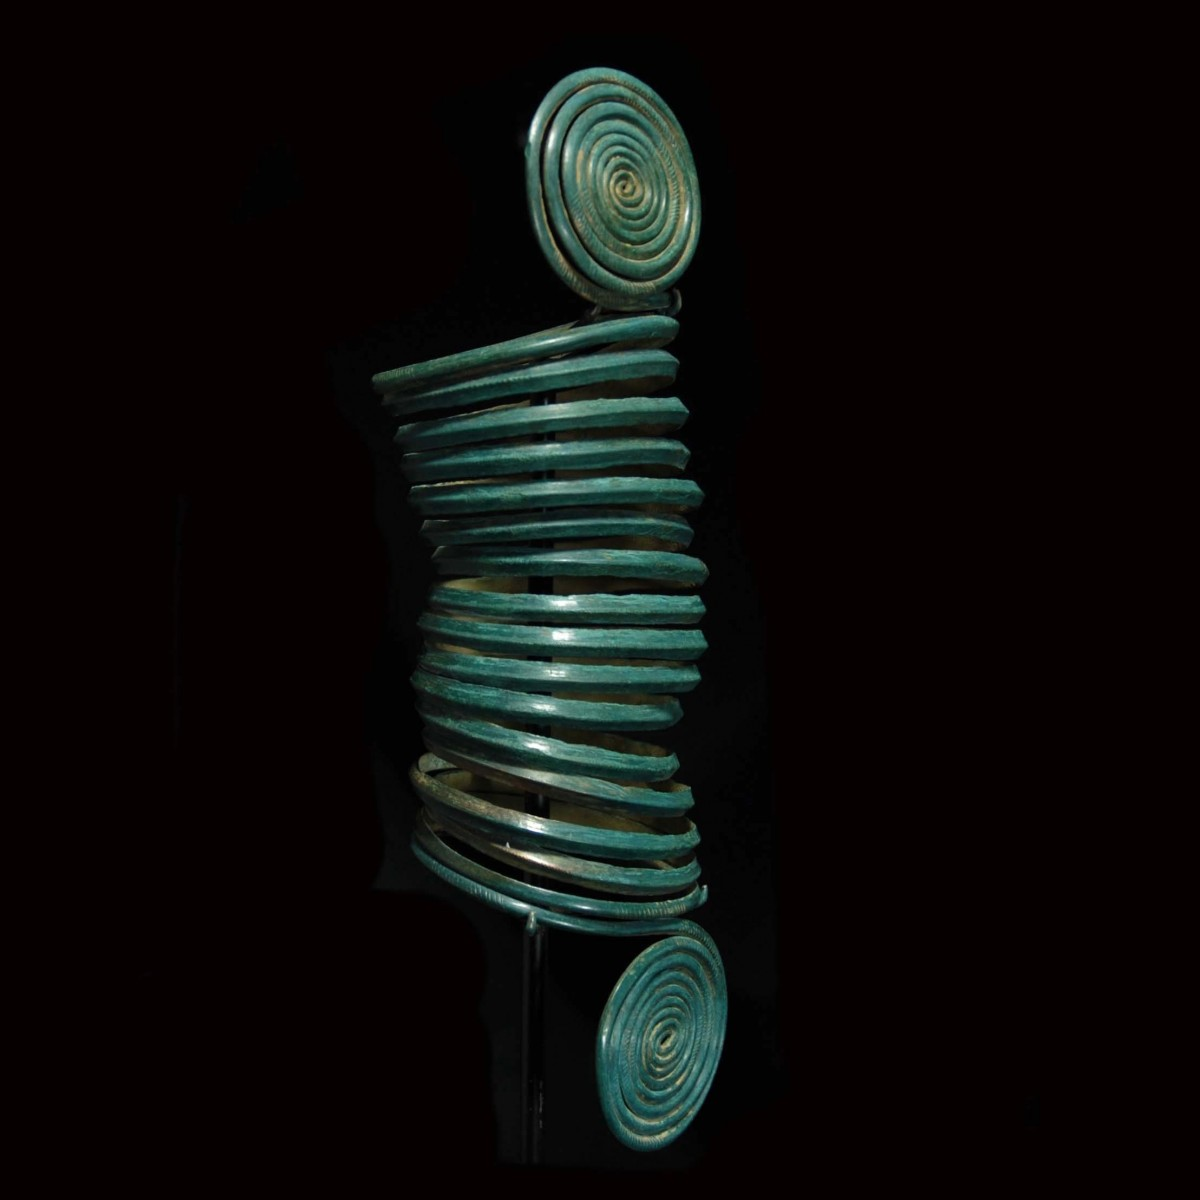 Central European Copper Alloy Spiral Arm-Band right